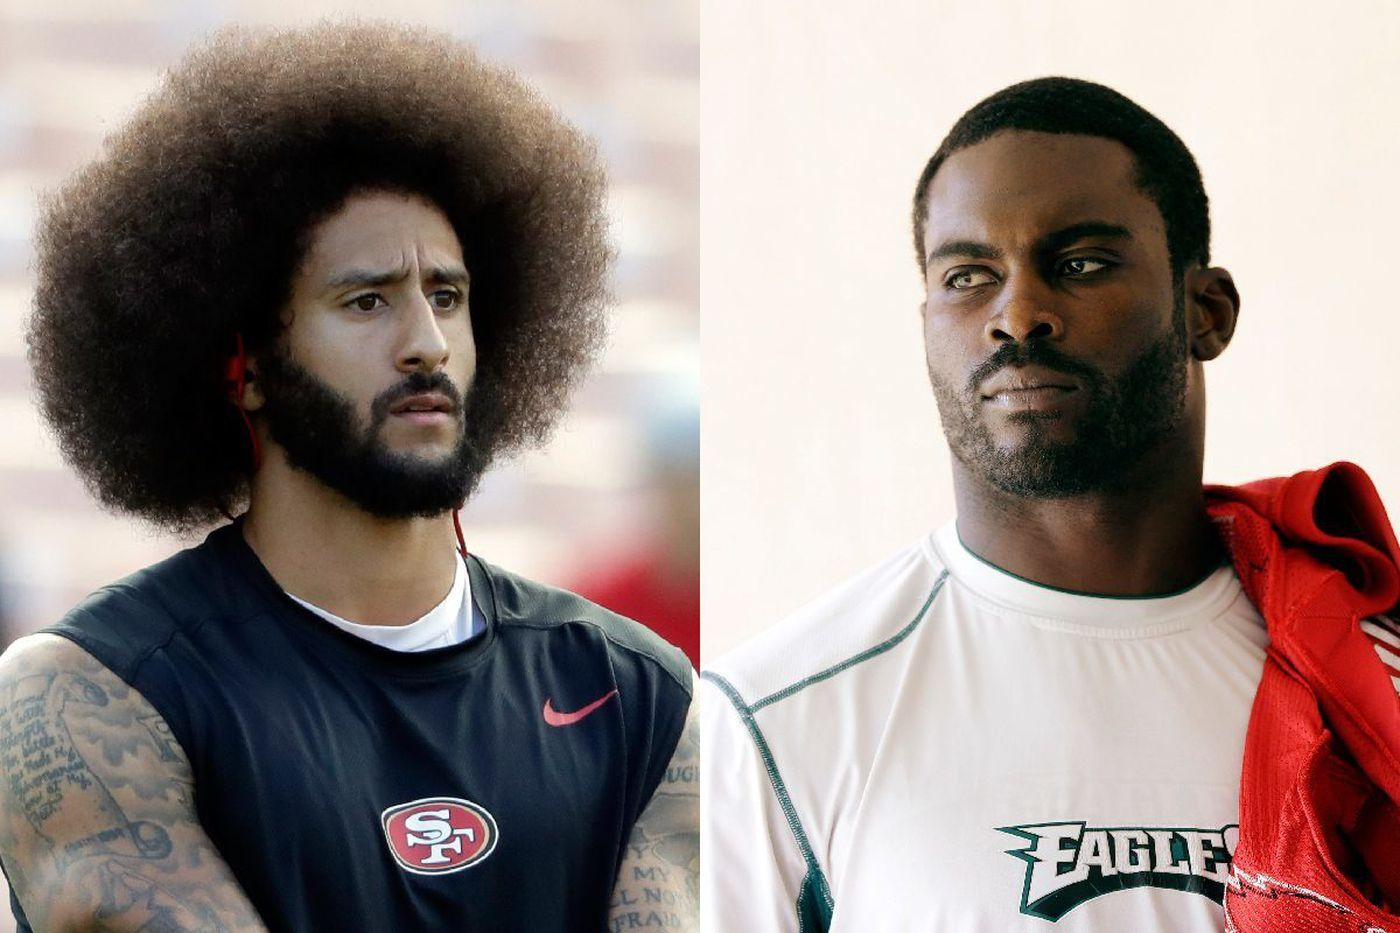 Were Michael Vick's comments about Colin Kaepernick's hair racist? | Readers respond